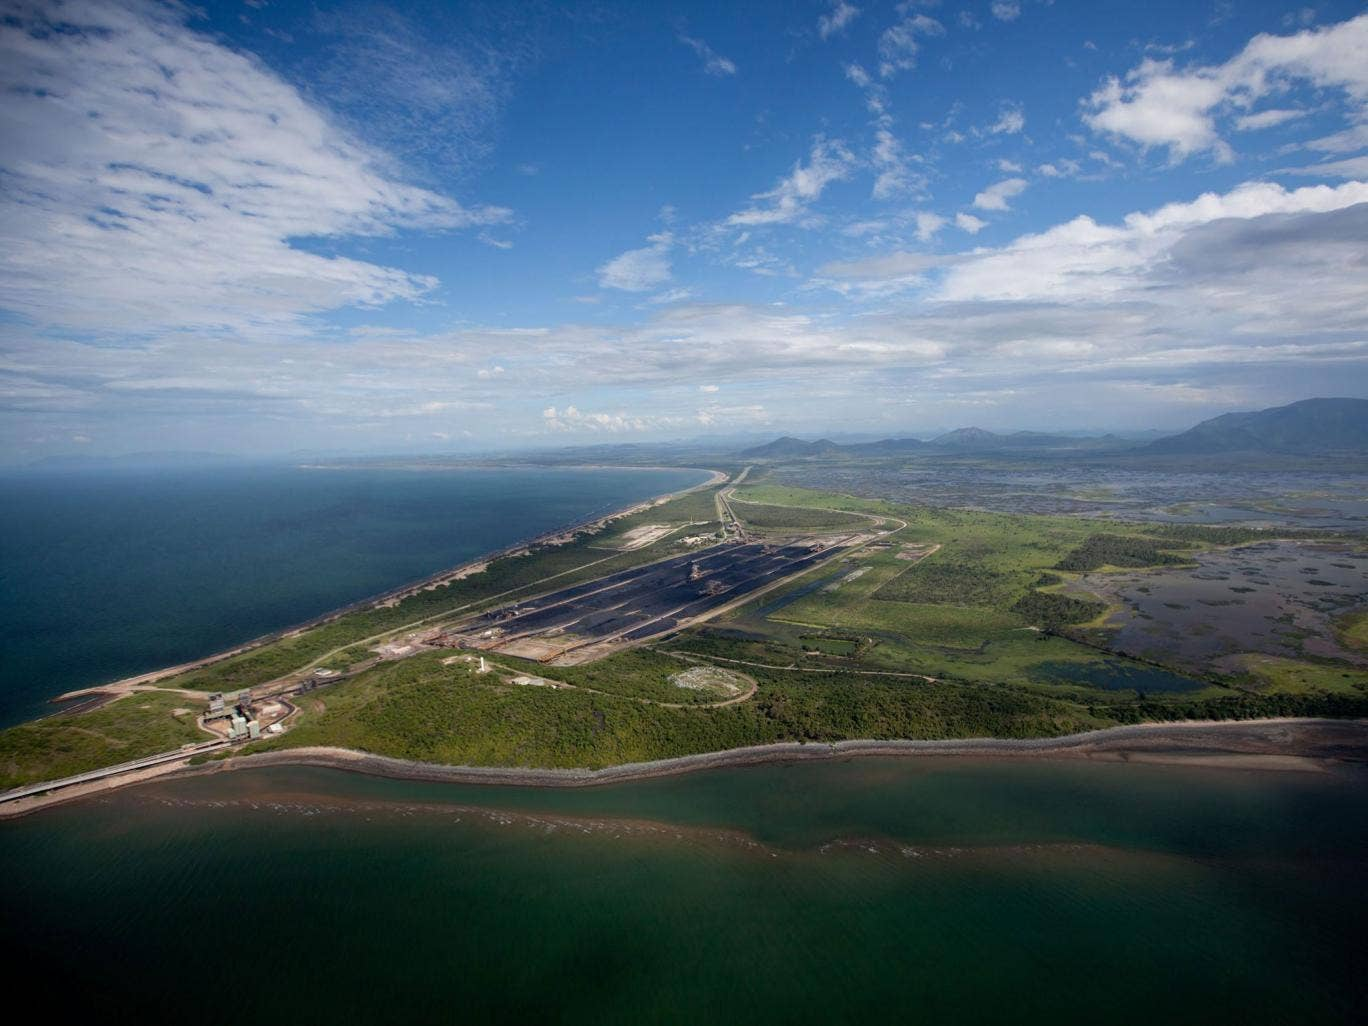 A picture made available by Greenpeace shows an aerial view of the Abbot Point coal point, where controversial plans to dump sludge in Great Barrier Reef Marine Park waters have been approved